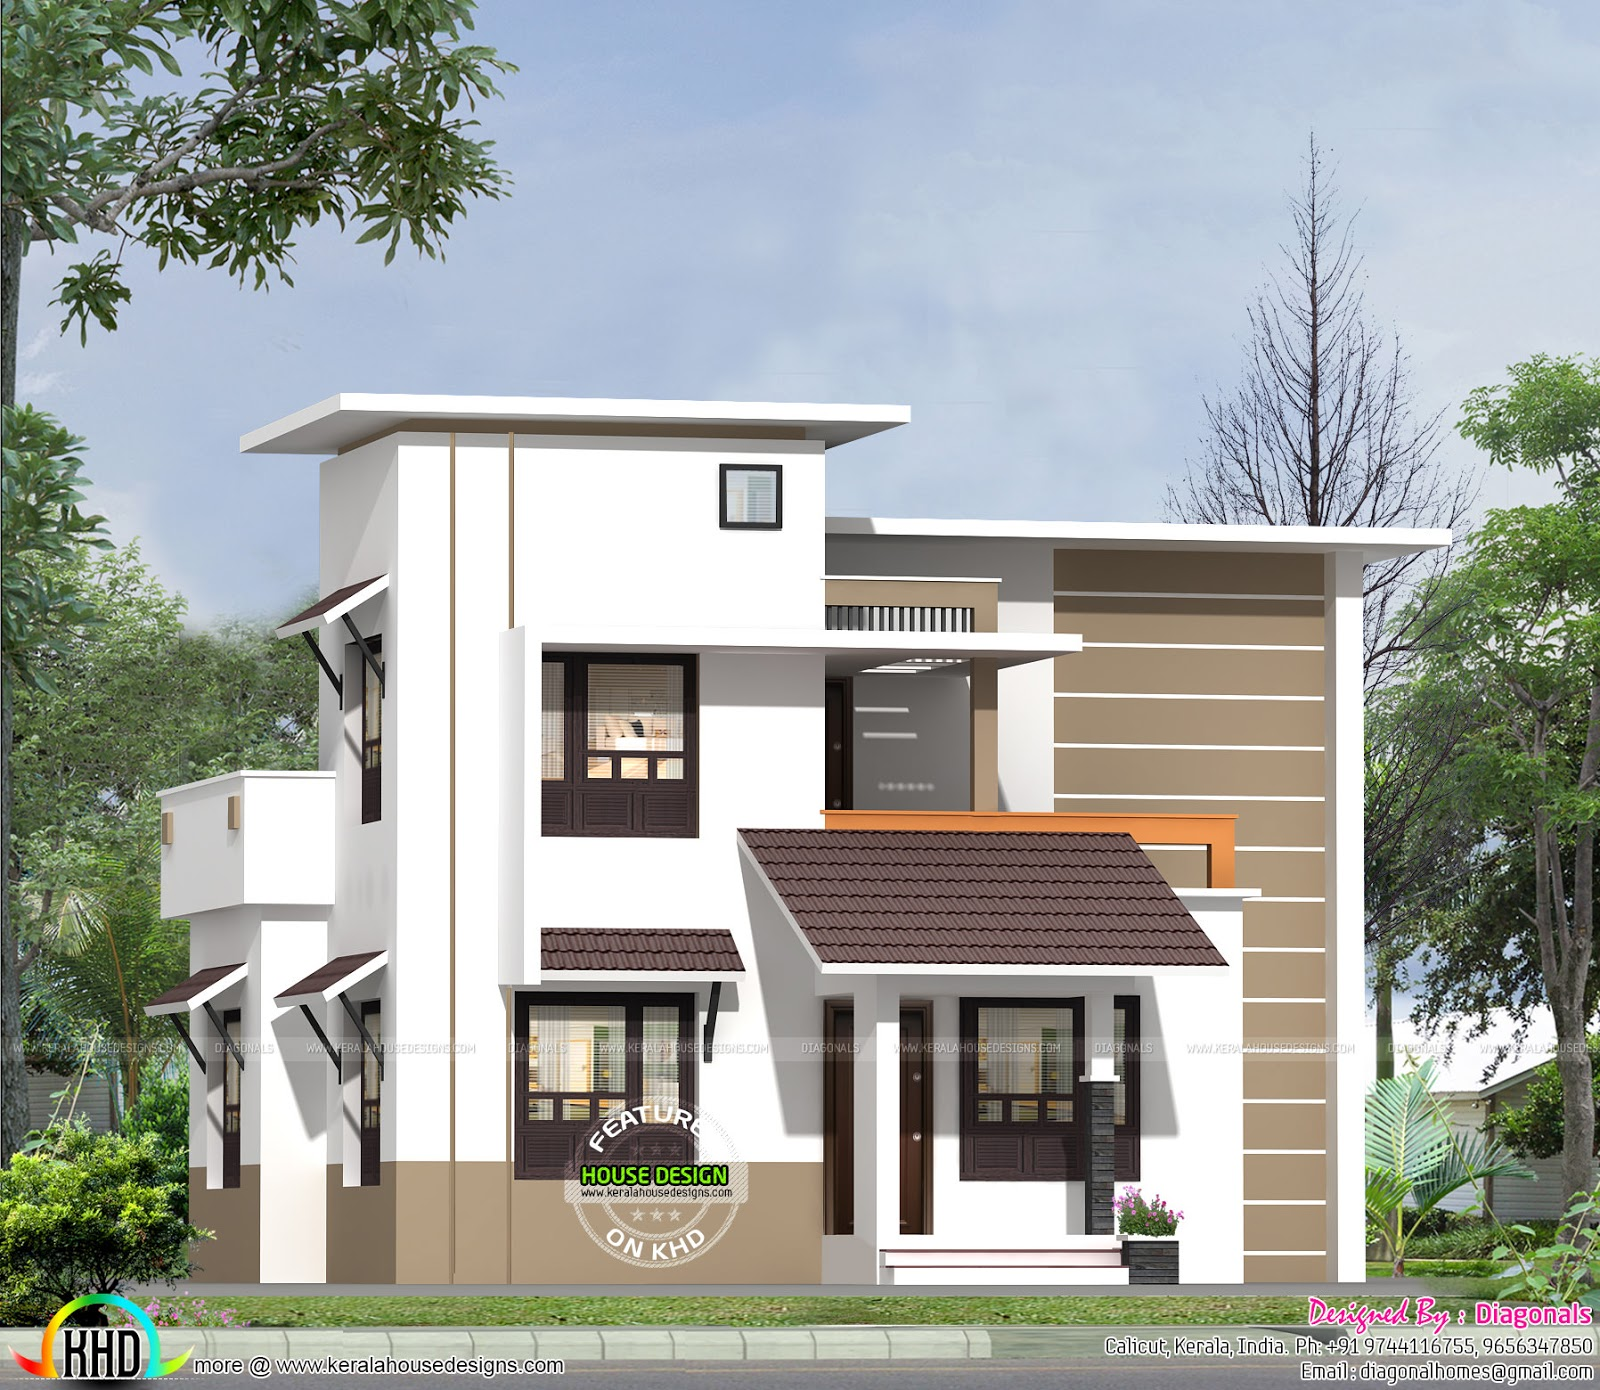 Affordable low cost home kerala home design and floor plans - Oggetti design low cost ...